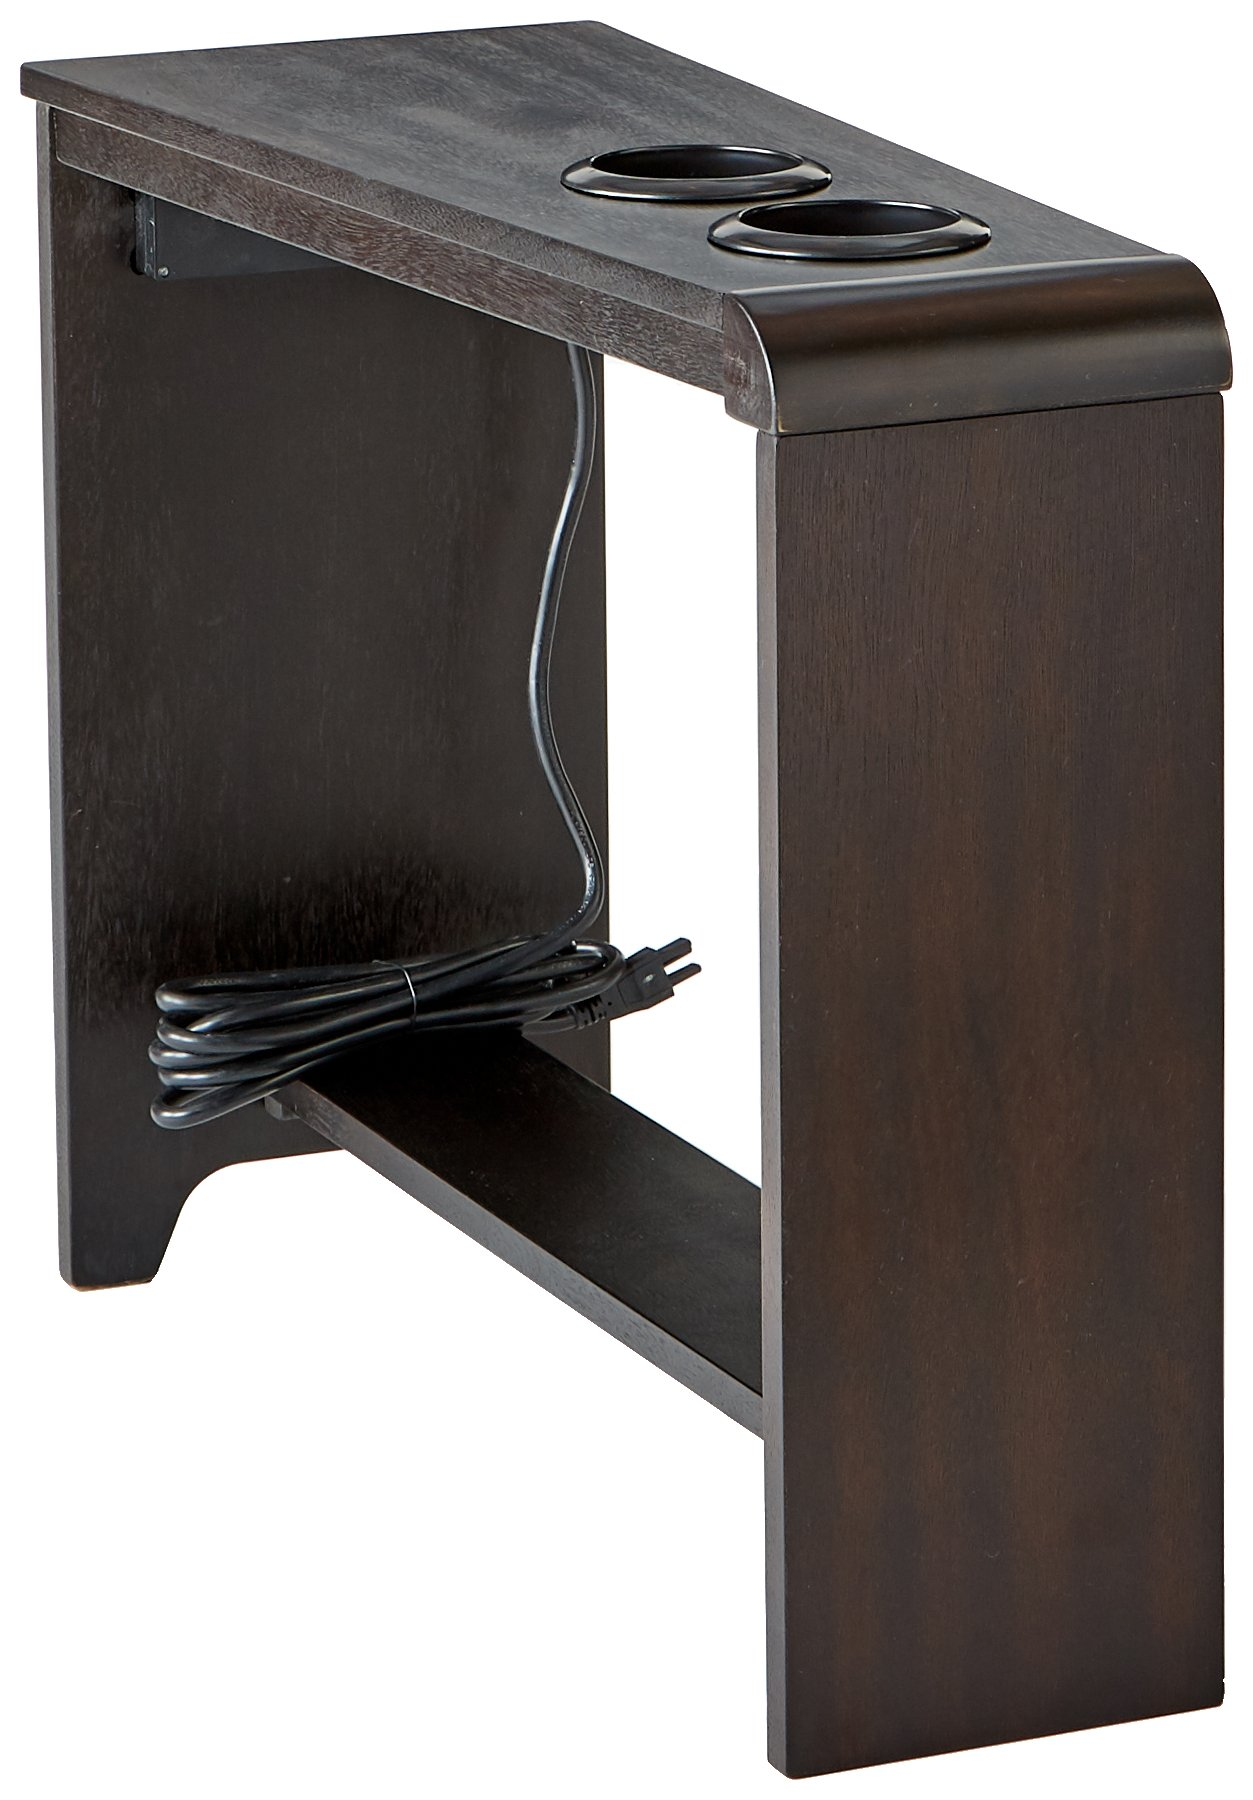 Ashley Furniture Signature Design - Carlyle Chairside End Table - Rectangular with 2 USB Ports - Contemporary - Almost Black by Signature Design by Ashley